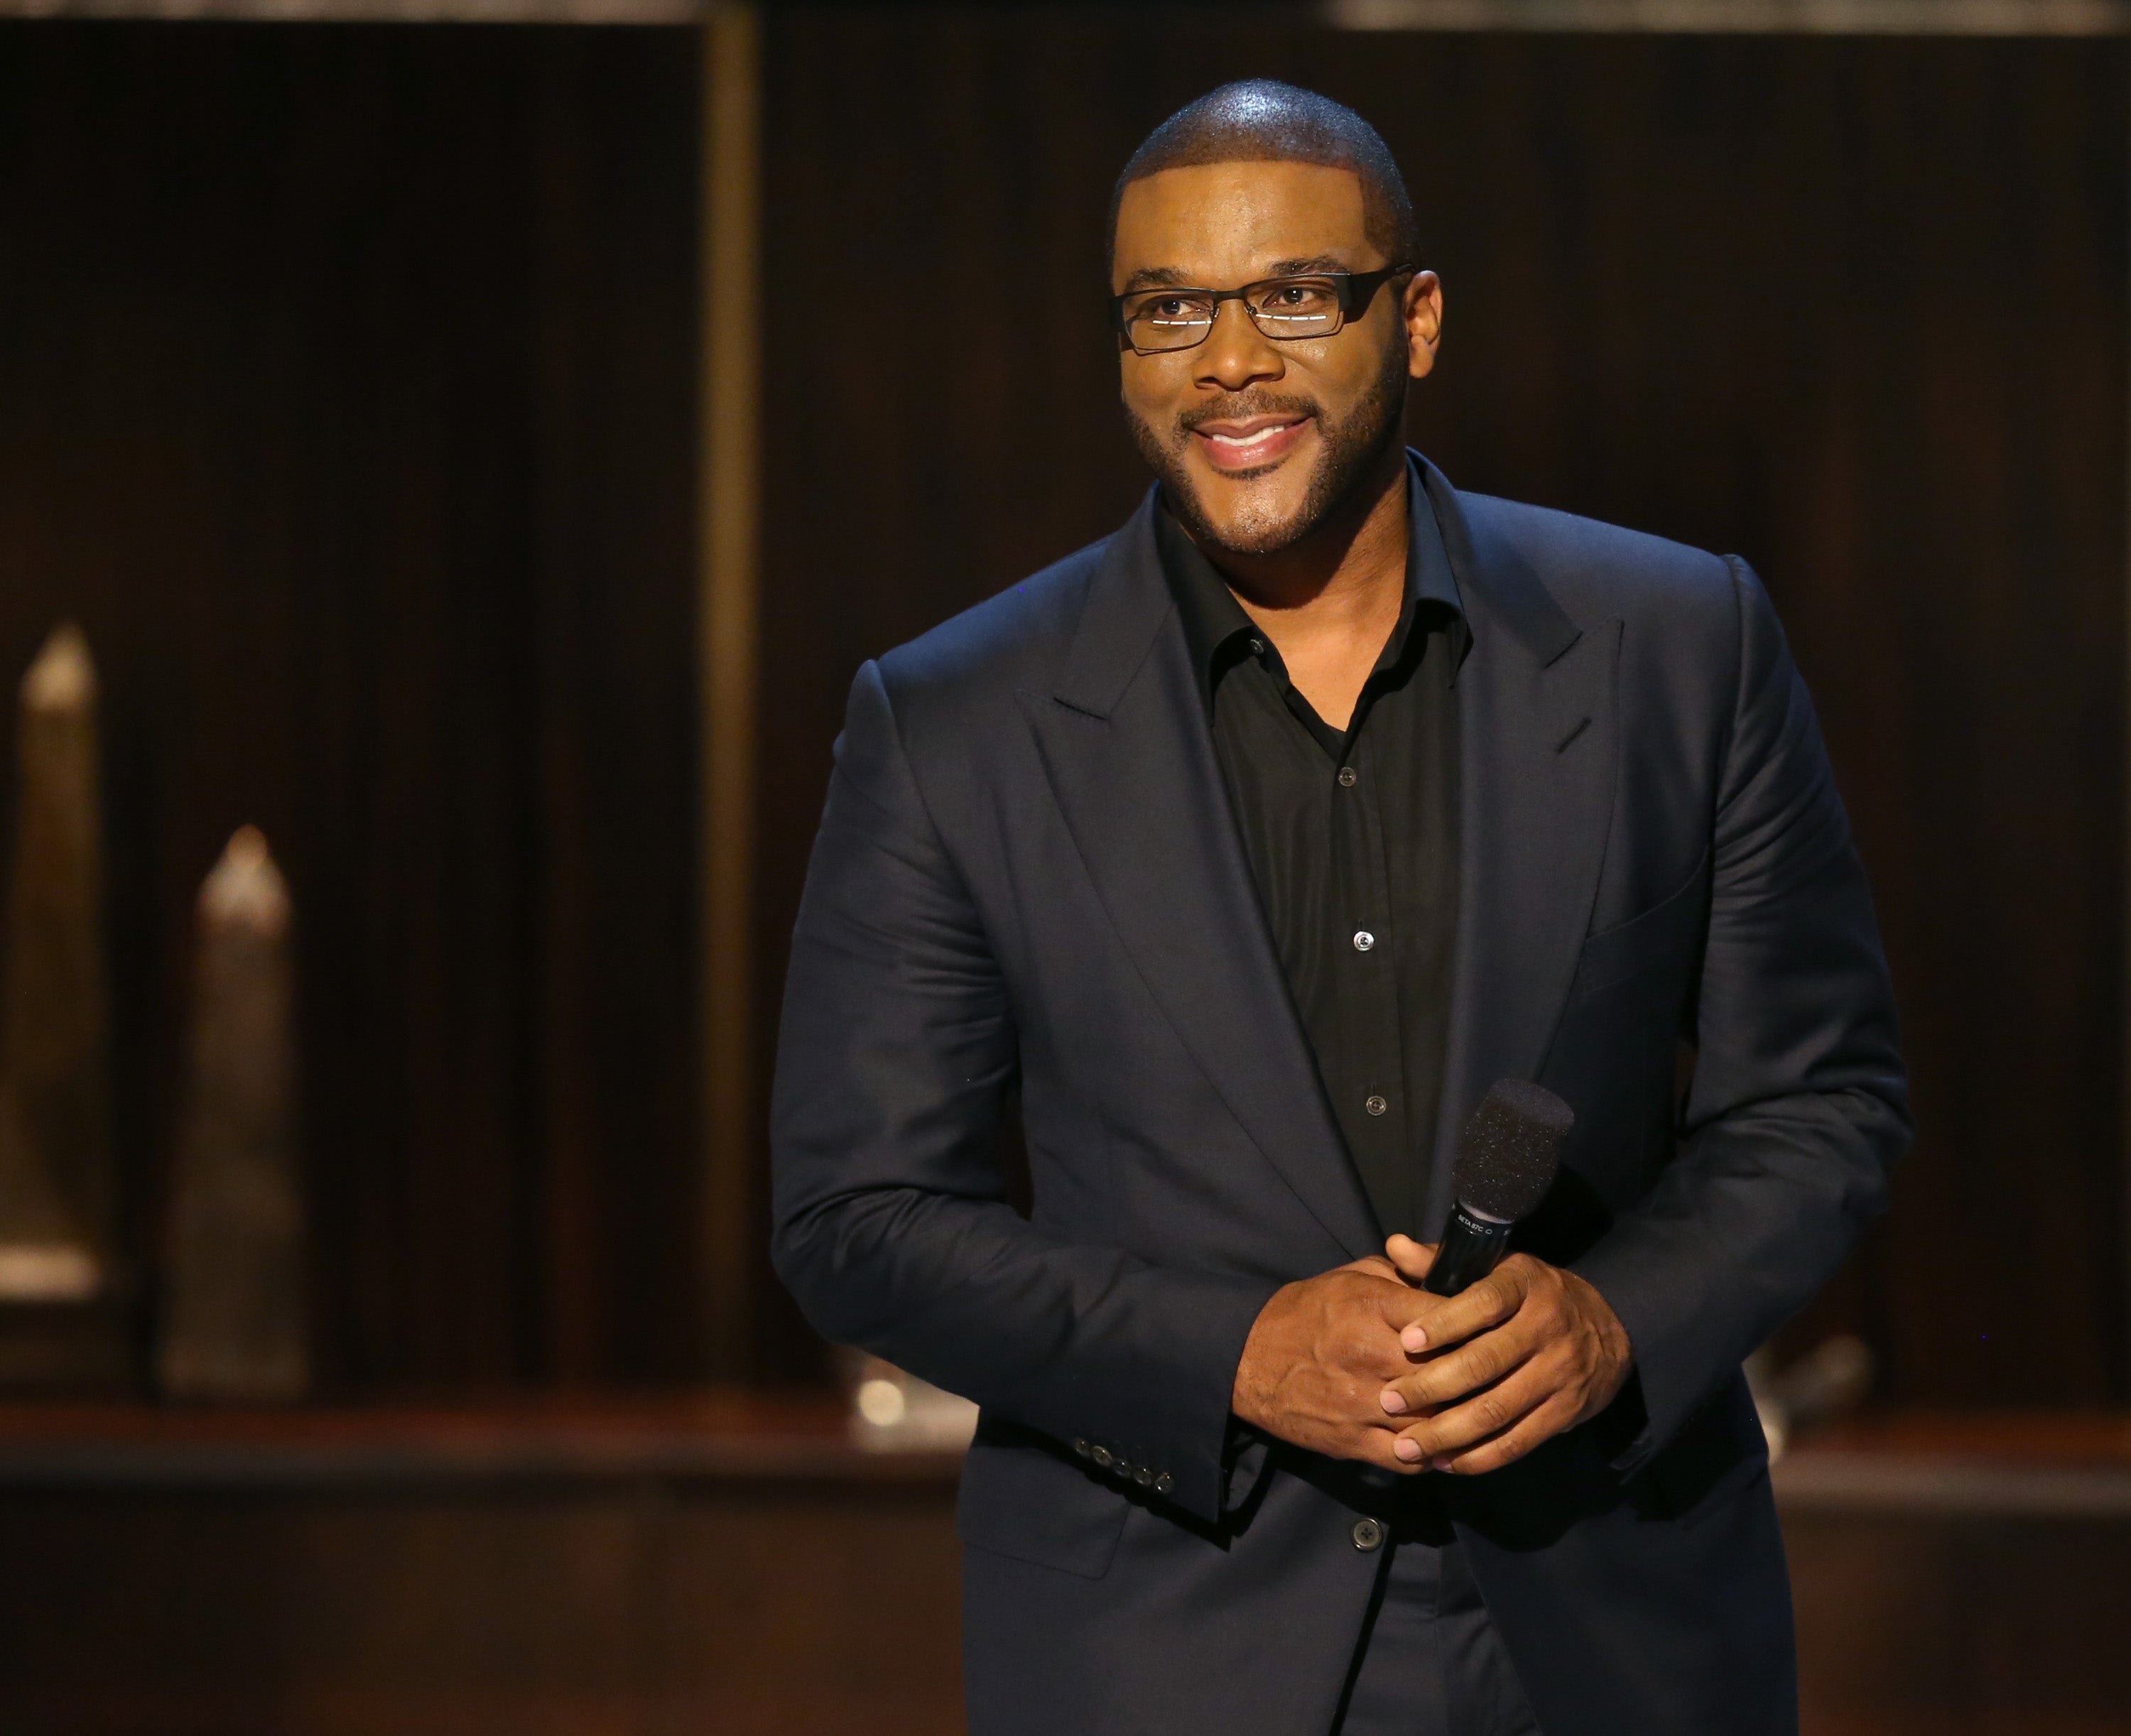 Tyler Perry Says He Struggles To Get His Films Shown In White Neighborhoods